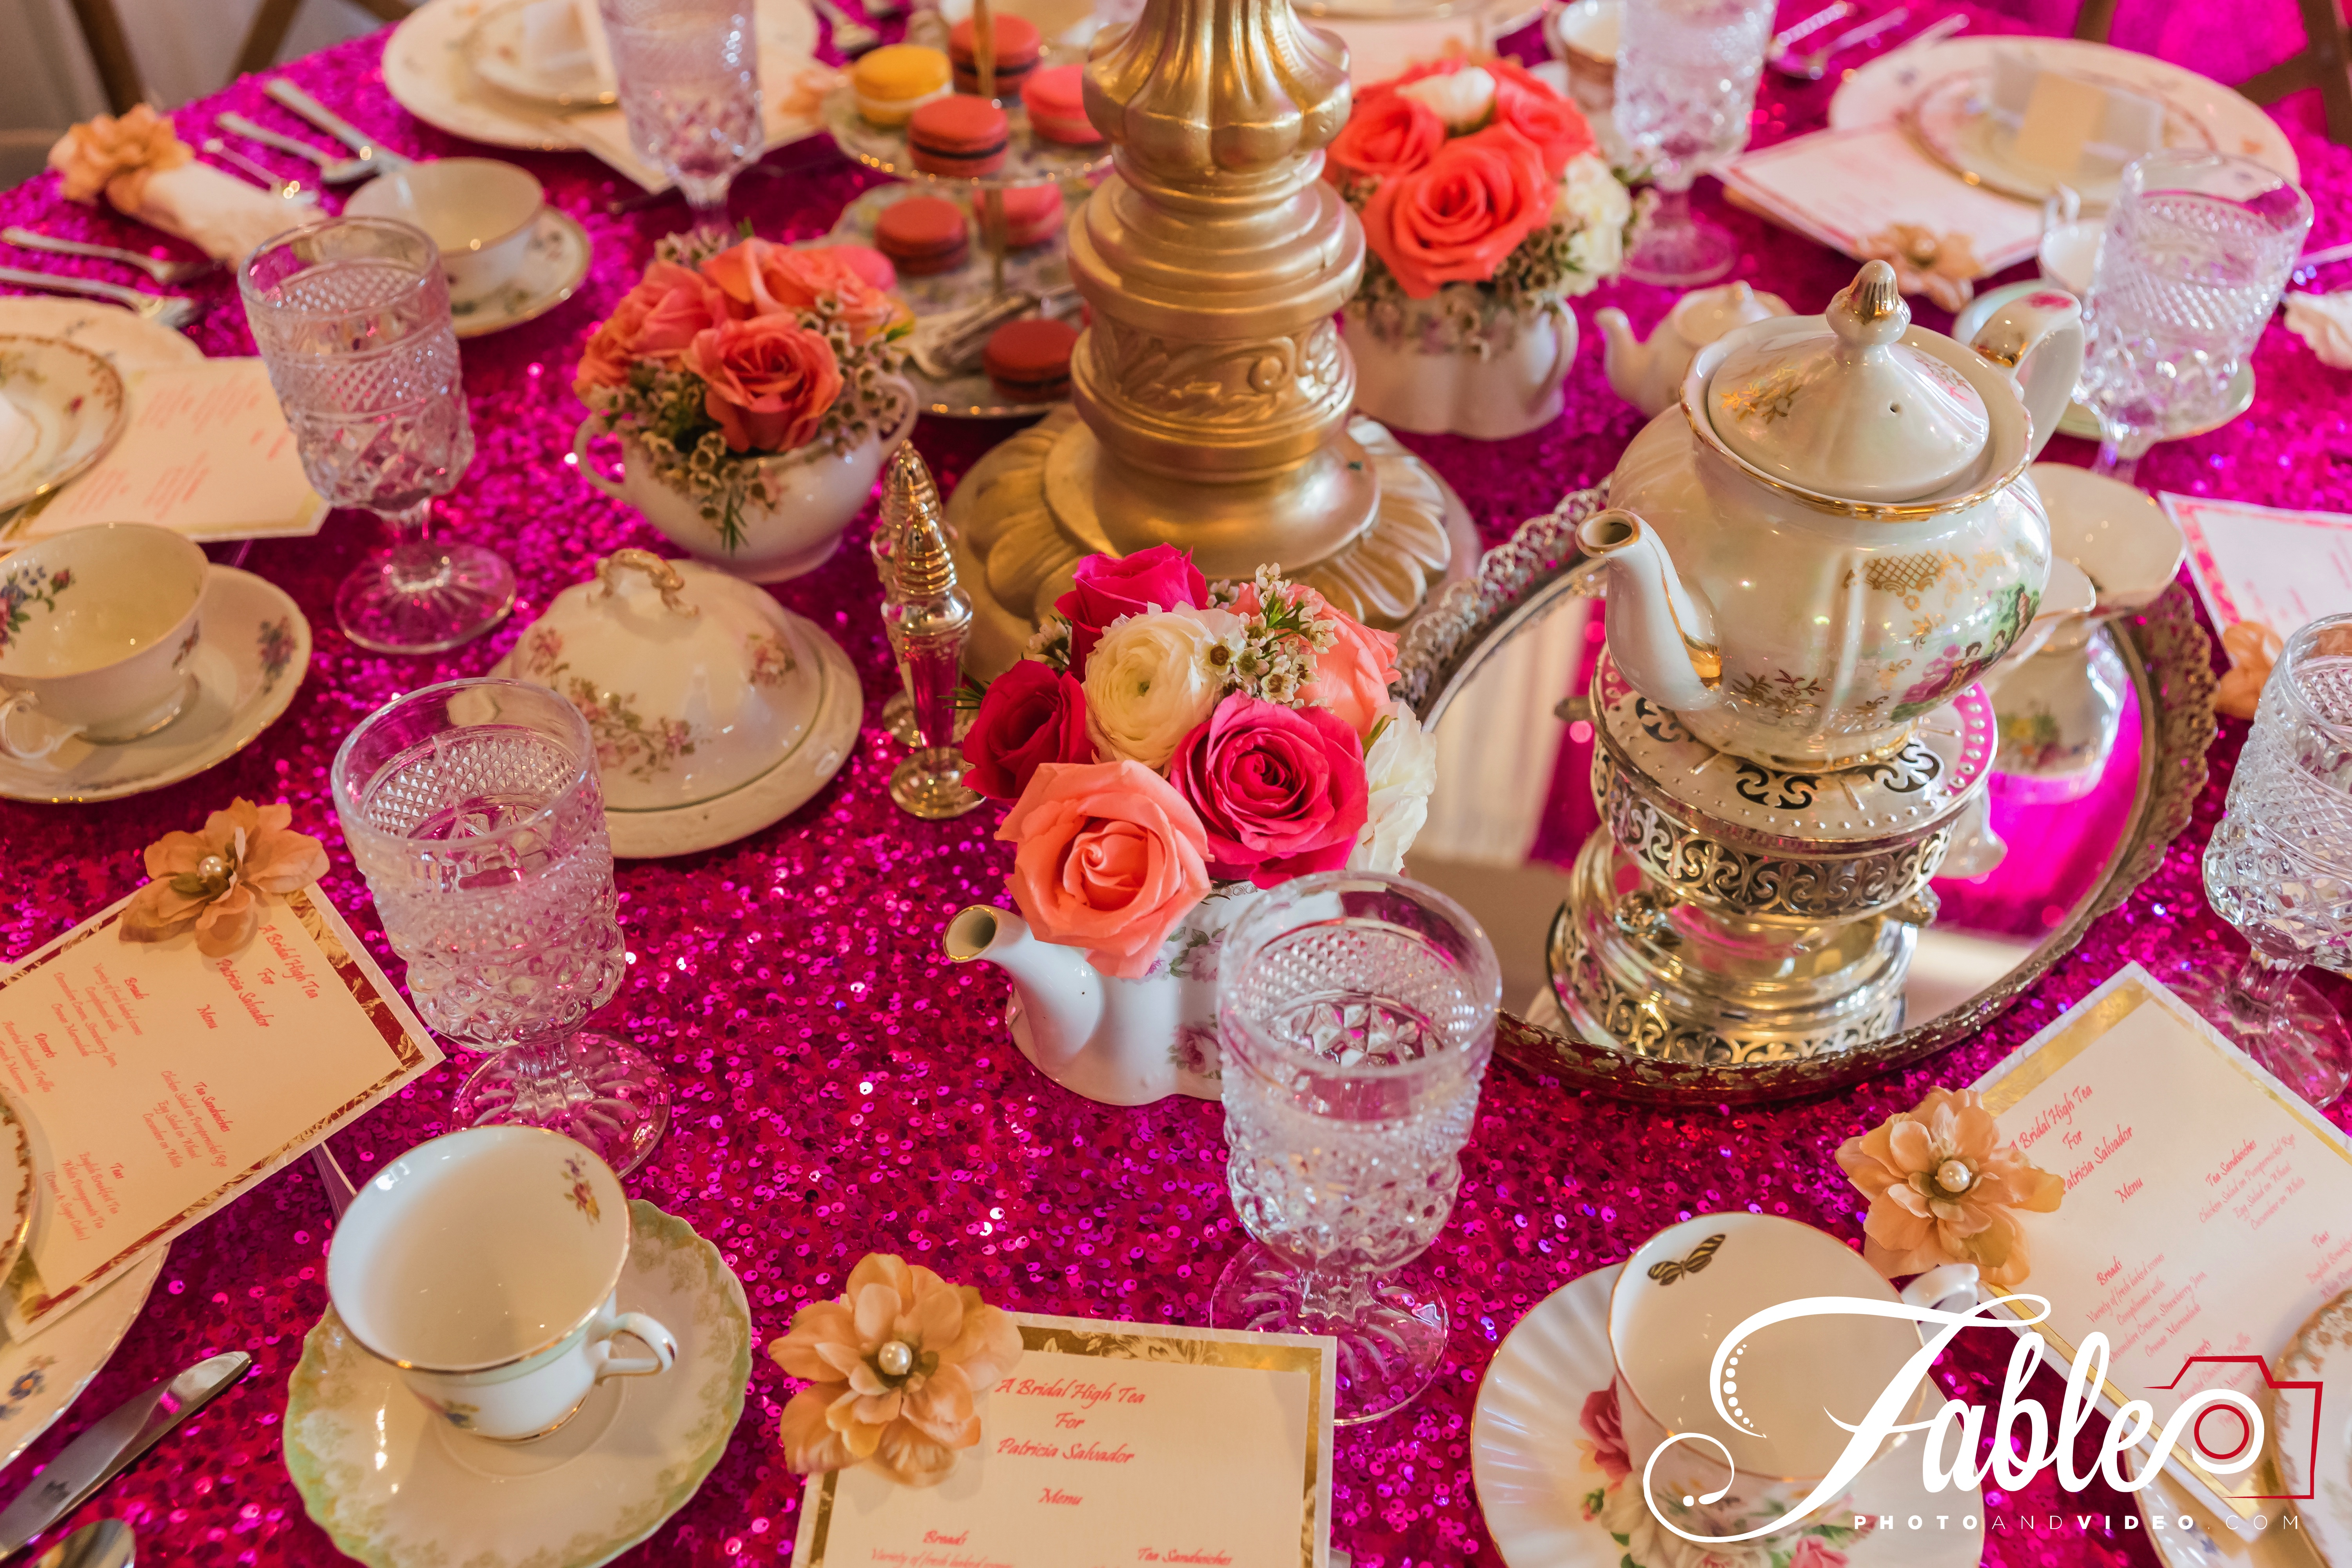 Pillow talk…  An Afternoon Tea Party As A Bridal Shower